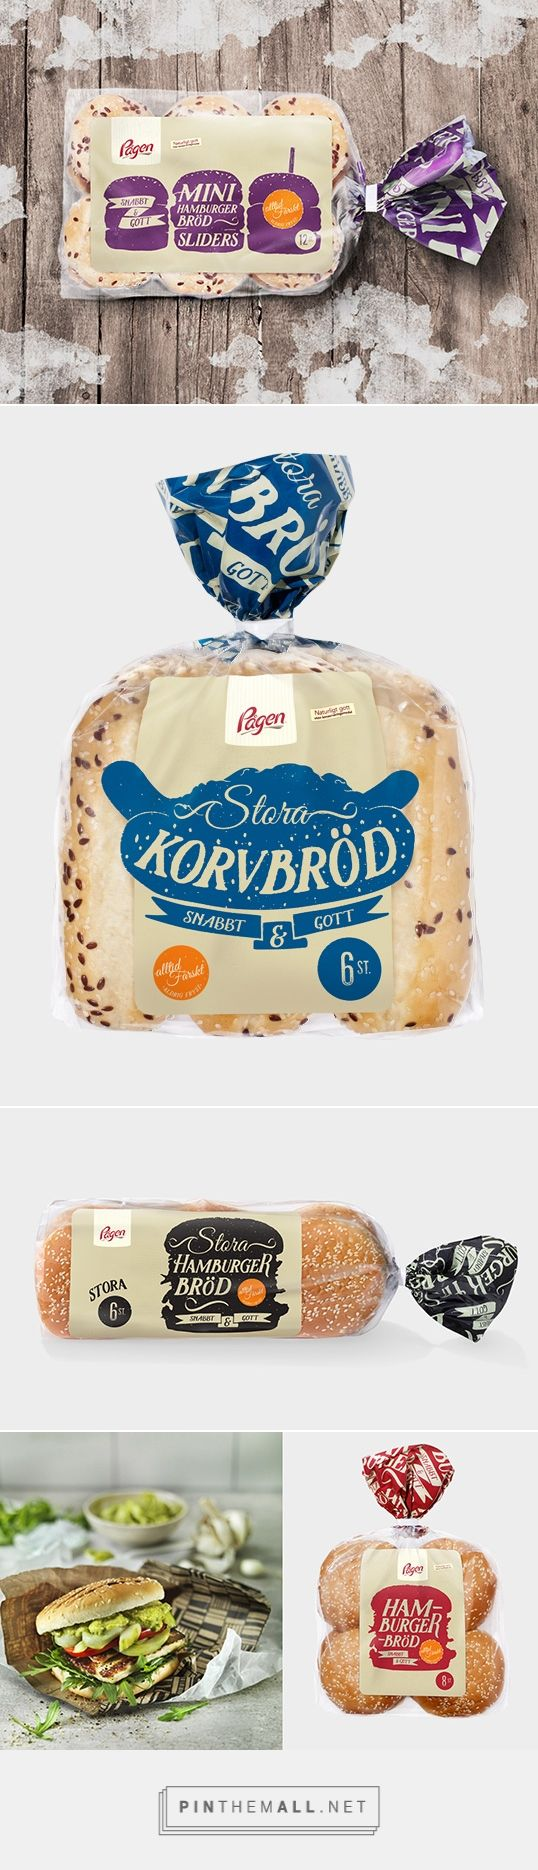 Pågen Bakery by DDB Göteborg. Pin curated by #SFields99 #packaging #design